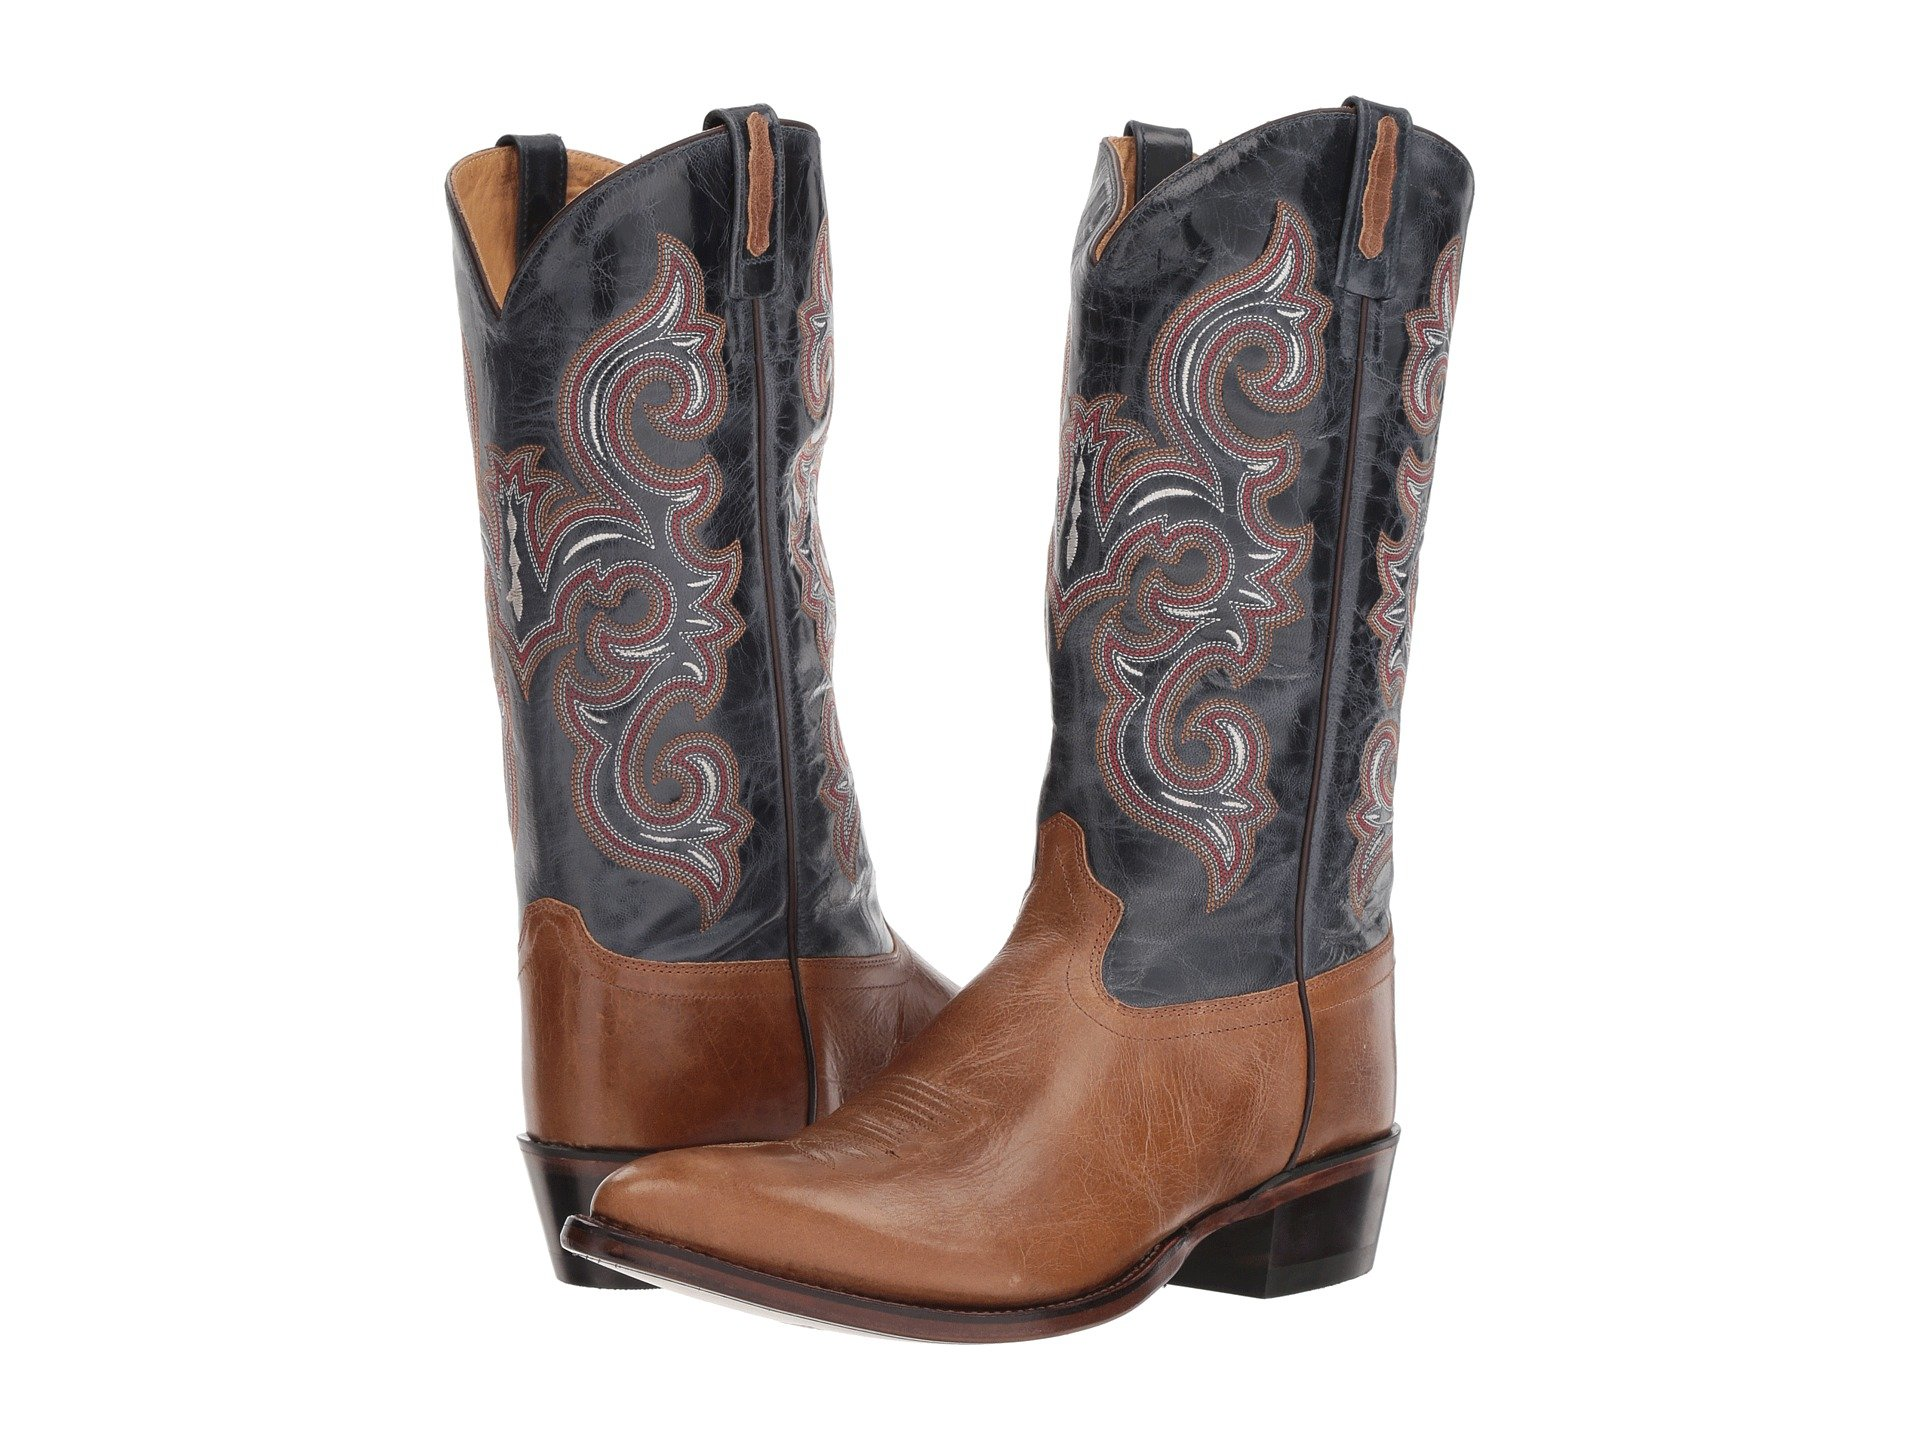 Canyon Boots Tan Old navy West 5508 awxzqWvP8